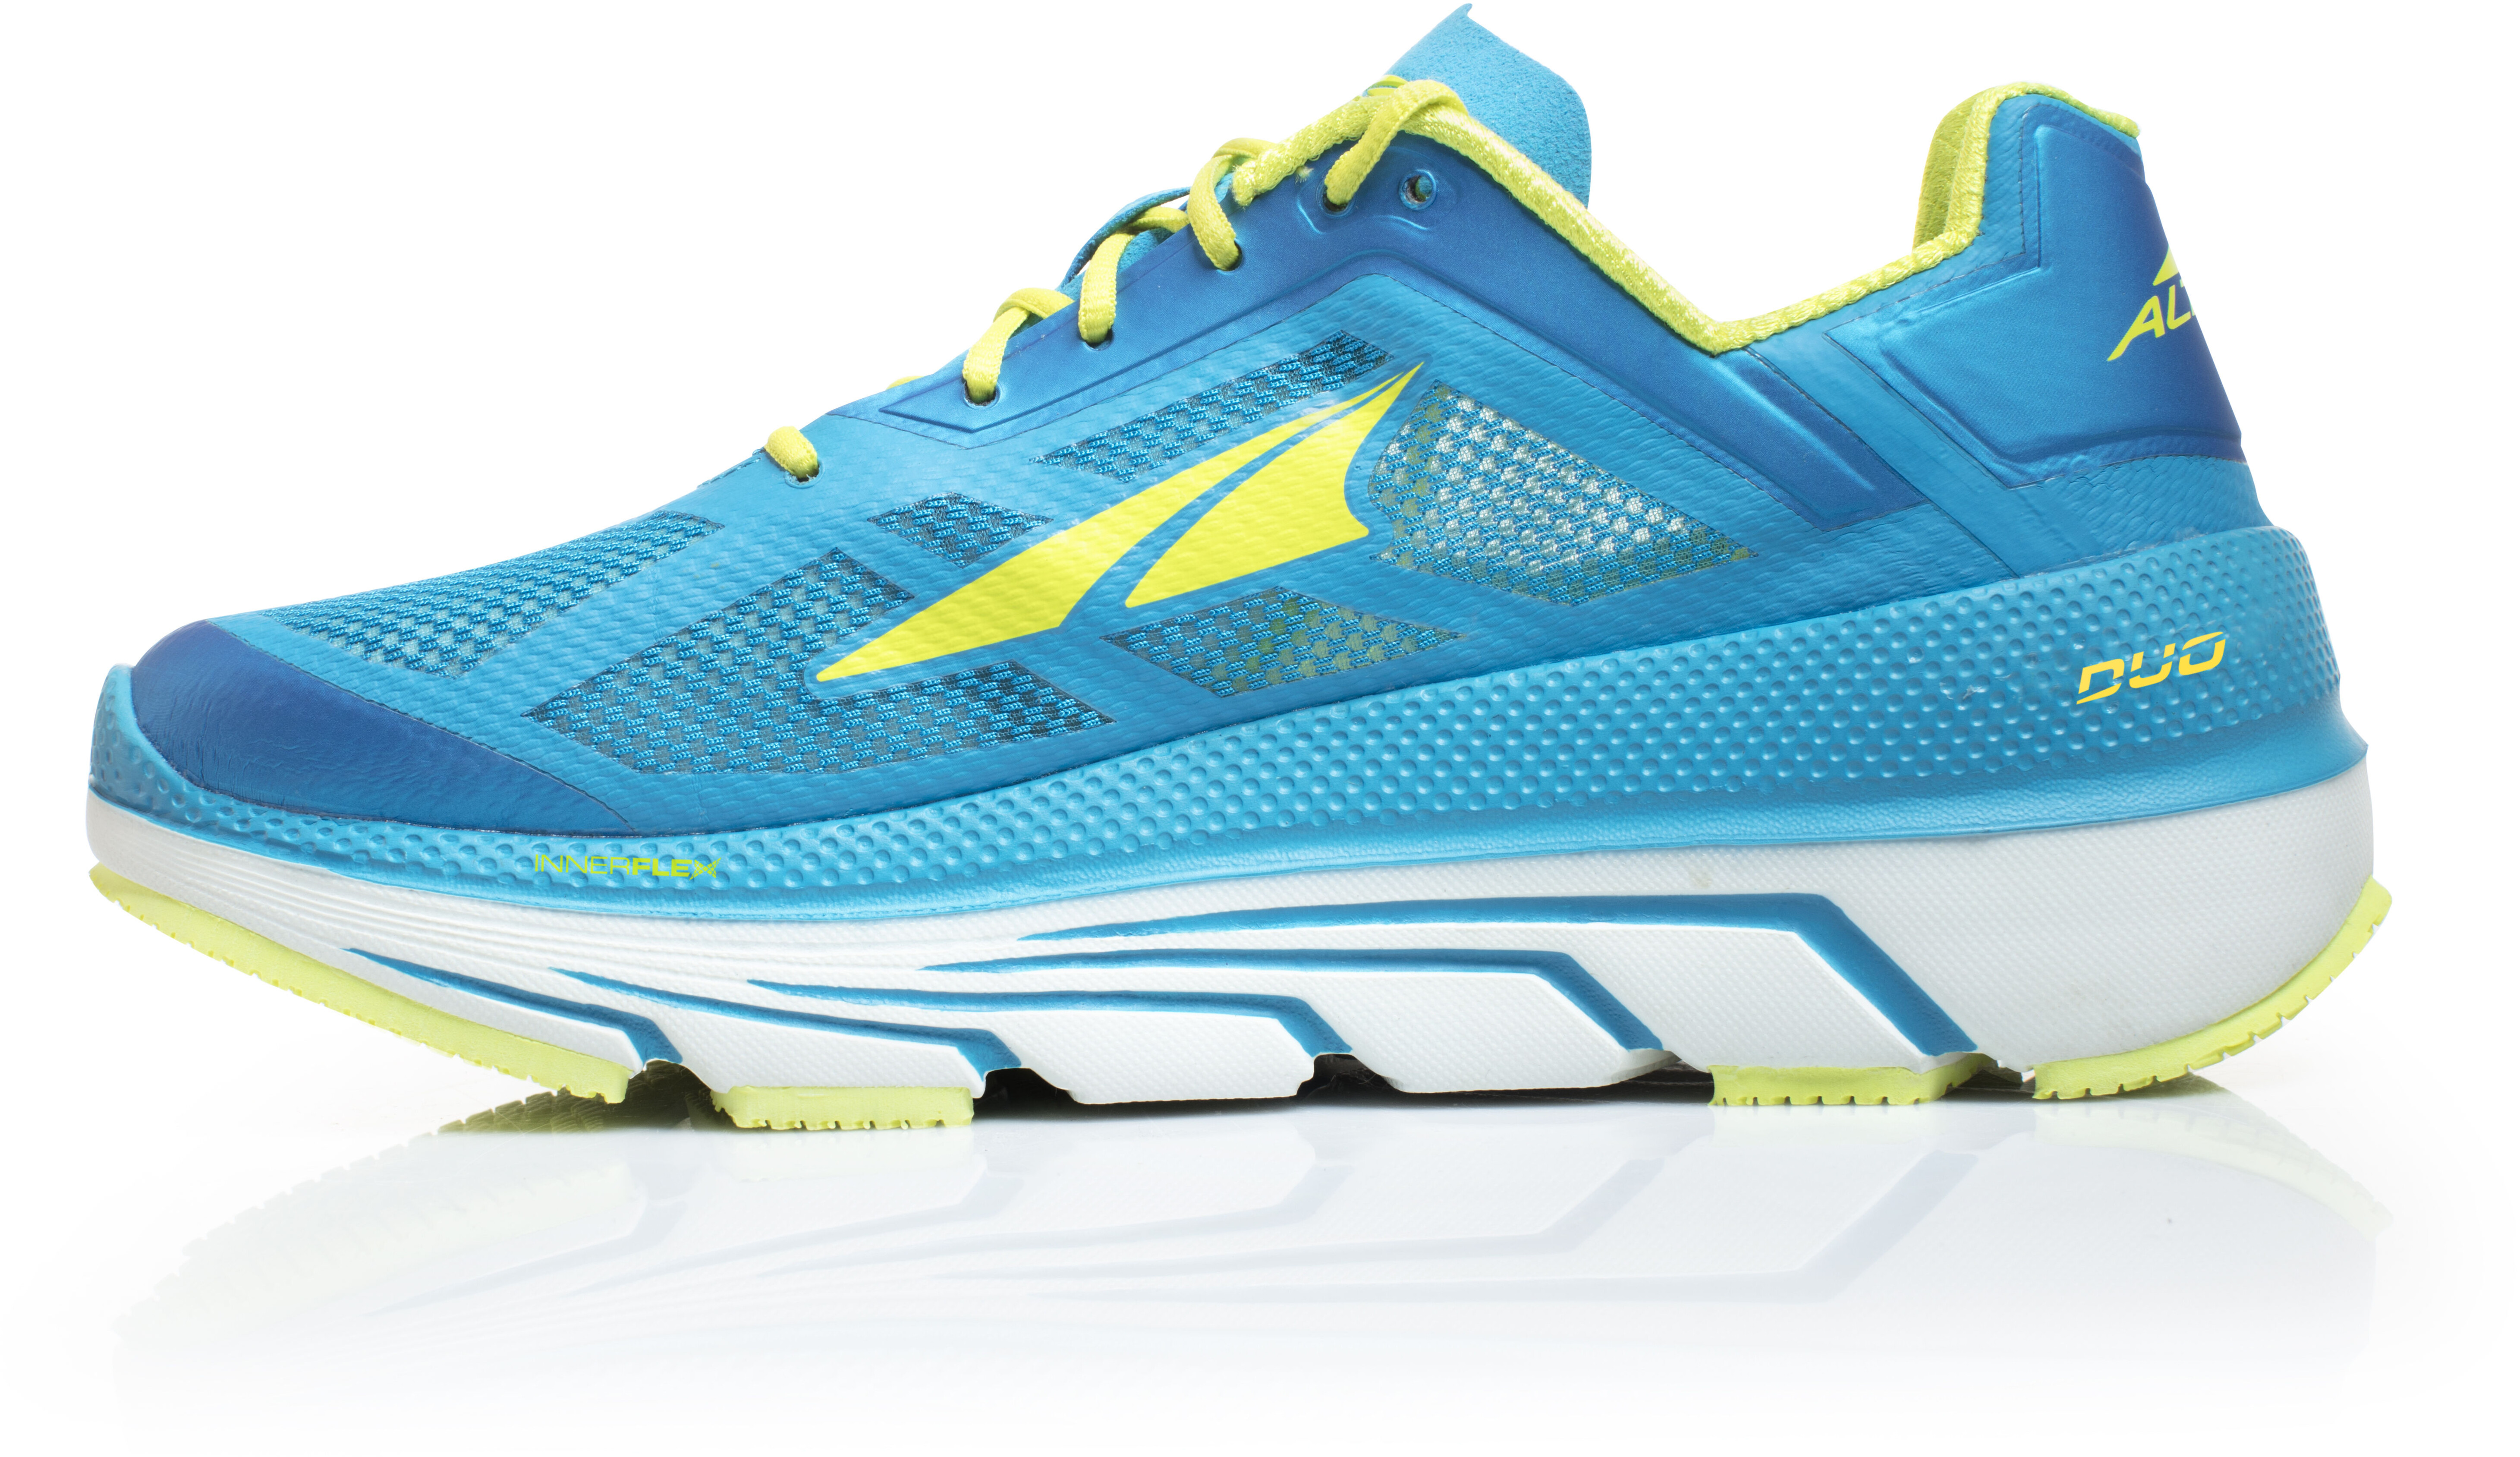 9f5ced55559e88 Altra Duo Road Running Shoes Women blue